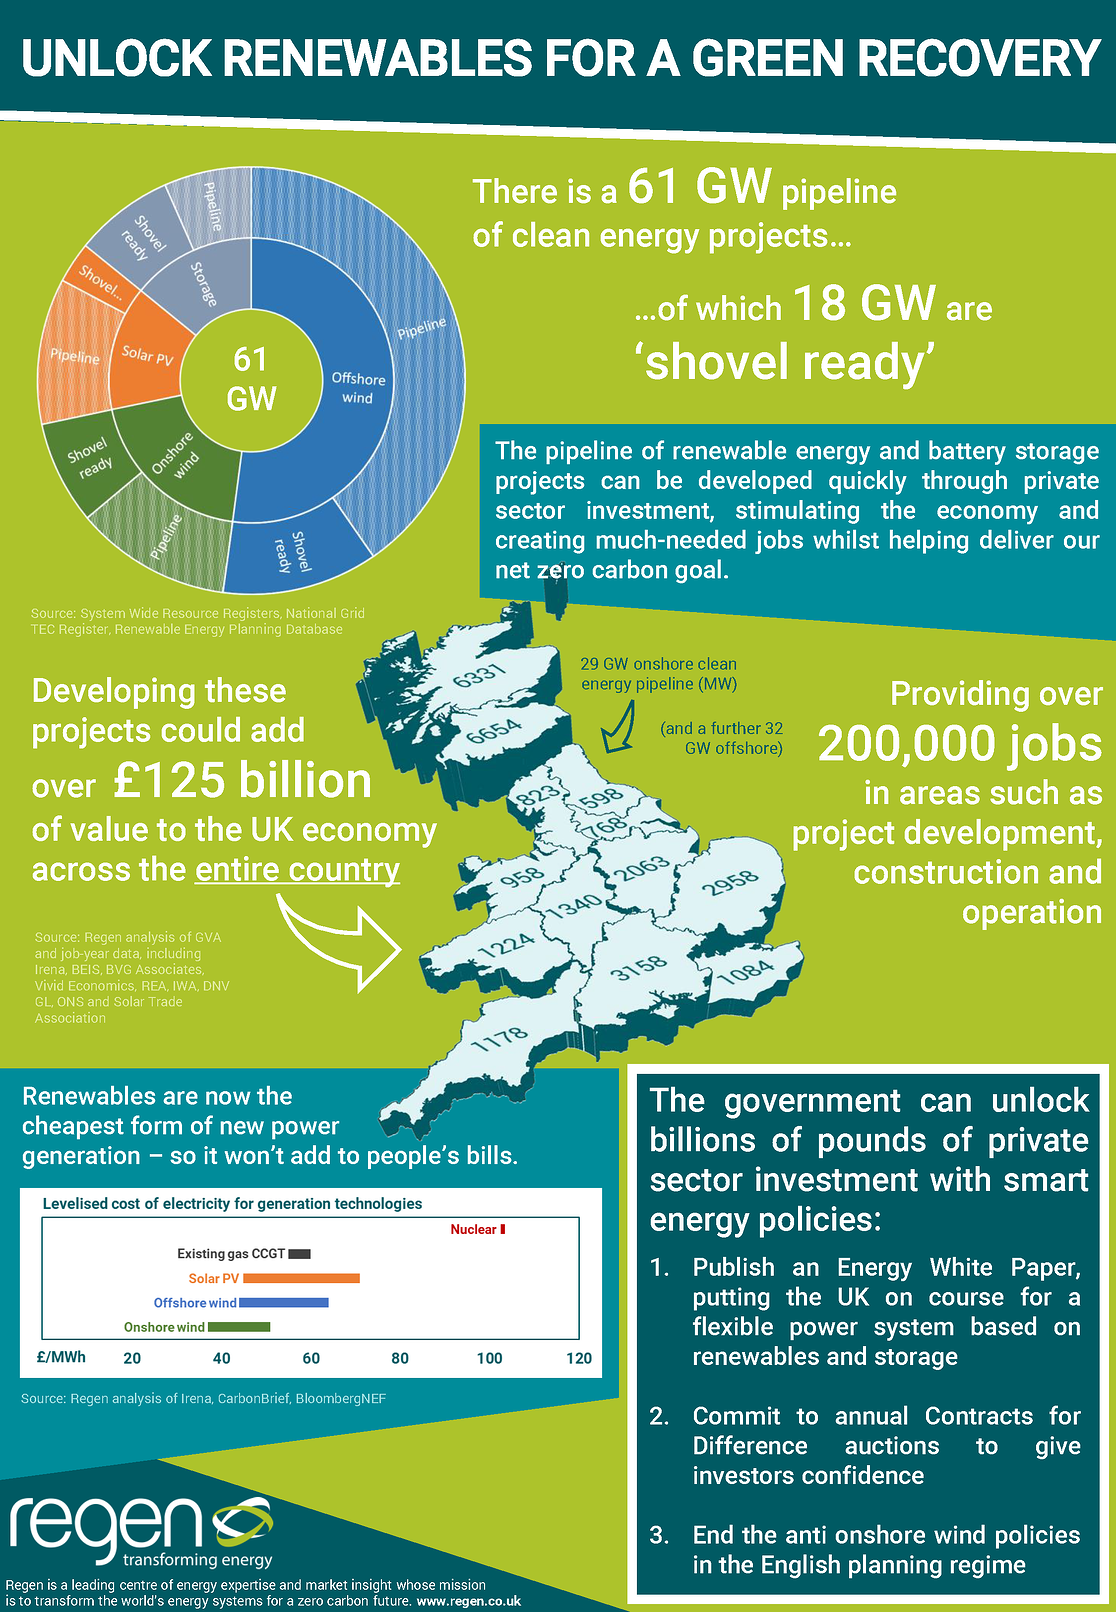 Unlock Renewables for a Green Recovery - high res png for website (003)